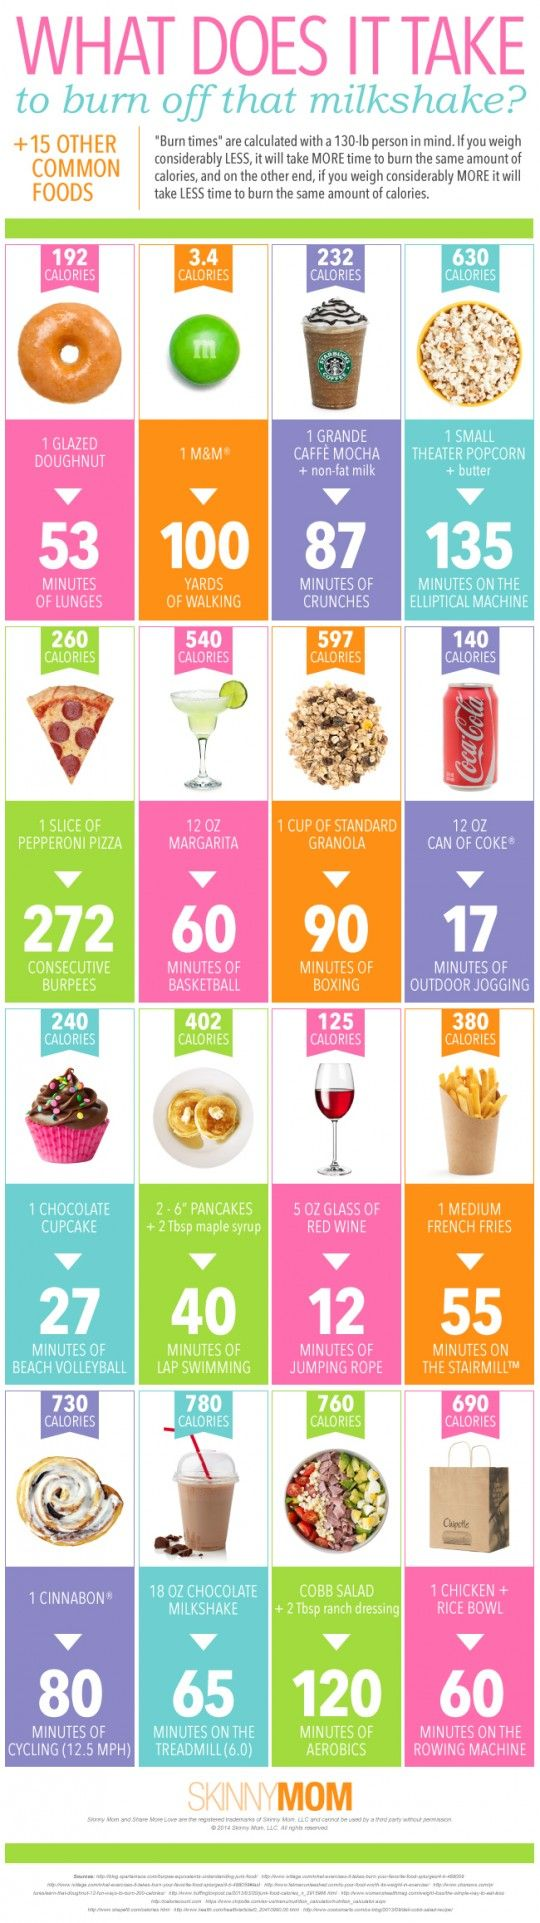 16 Common Foods and What It Takes to Burn It Off - EasyFitnessGuru.com-Explore more visuals like this one on the web's largest information design community – Visually. Related